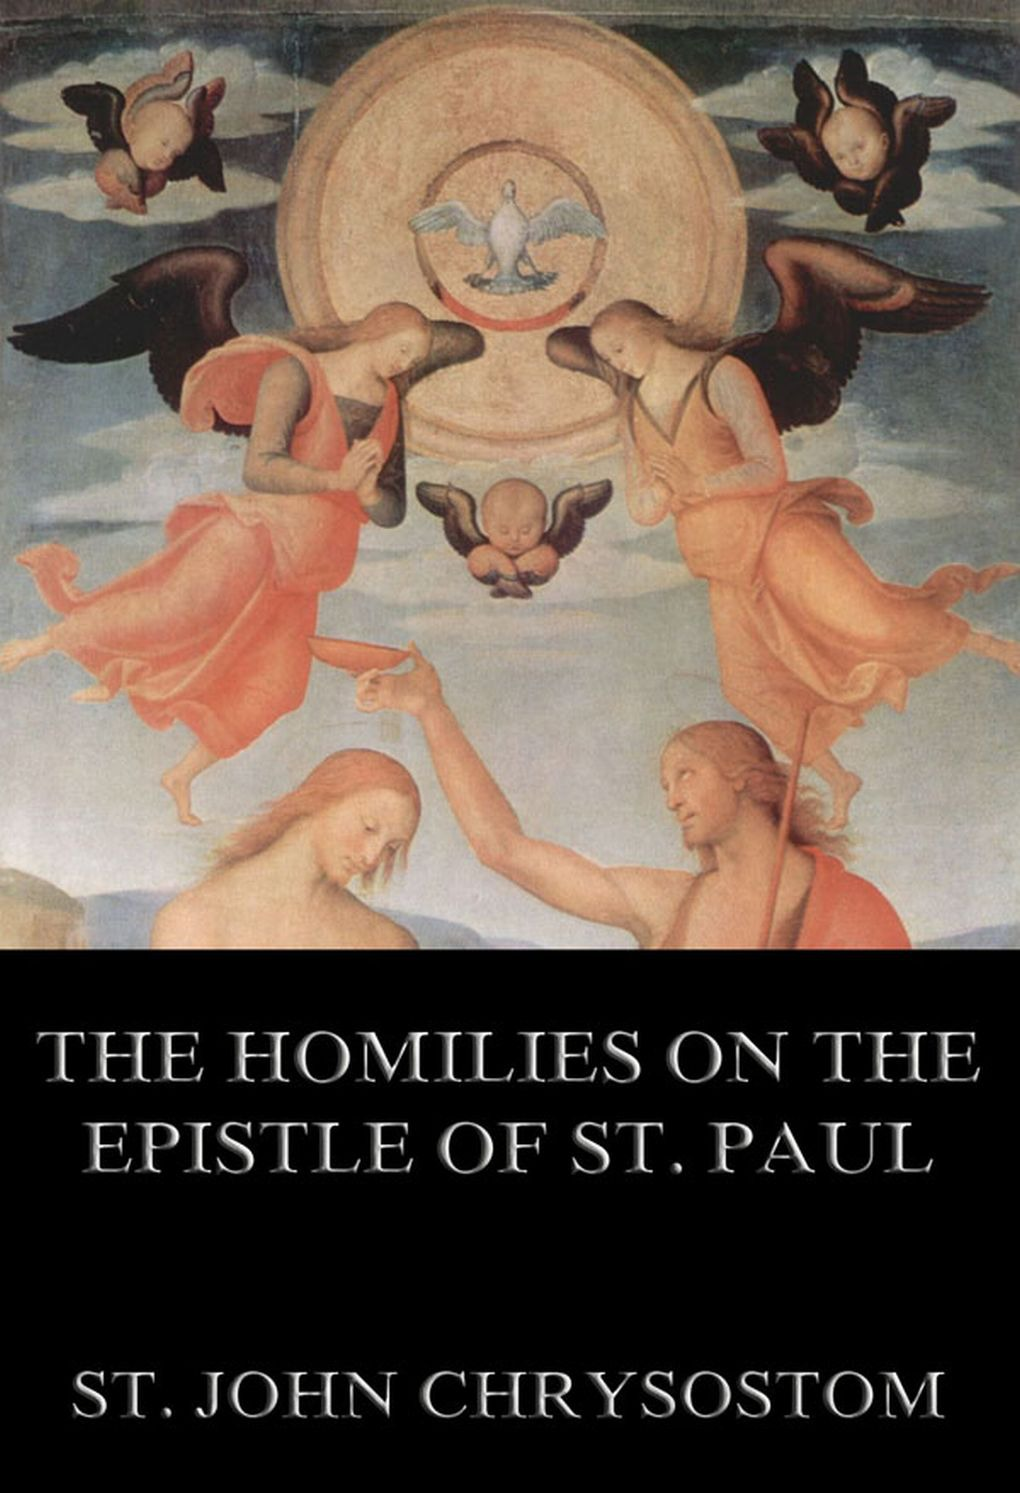 St. John Chrysostom The Homilies On The Epistle Of St. Paul To The Romans james denney the second epistle to the corinthians volume 38